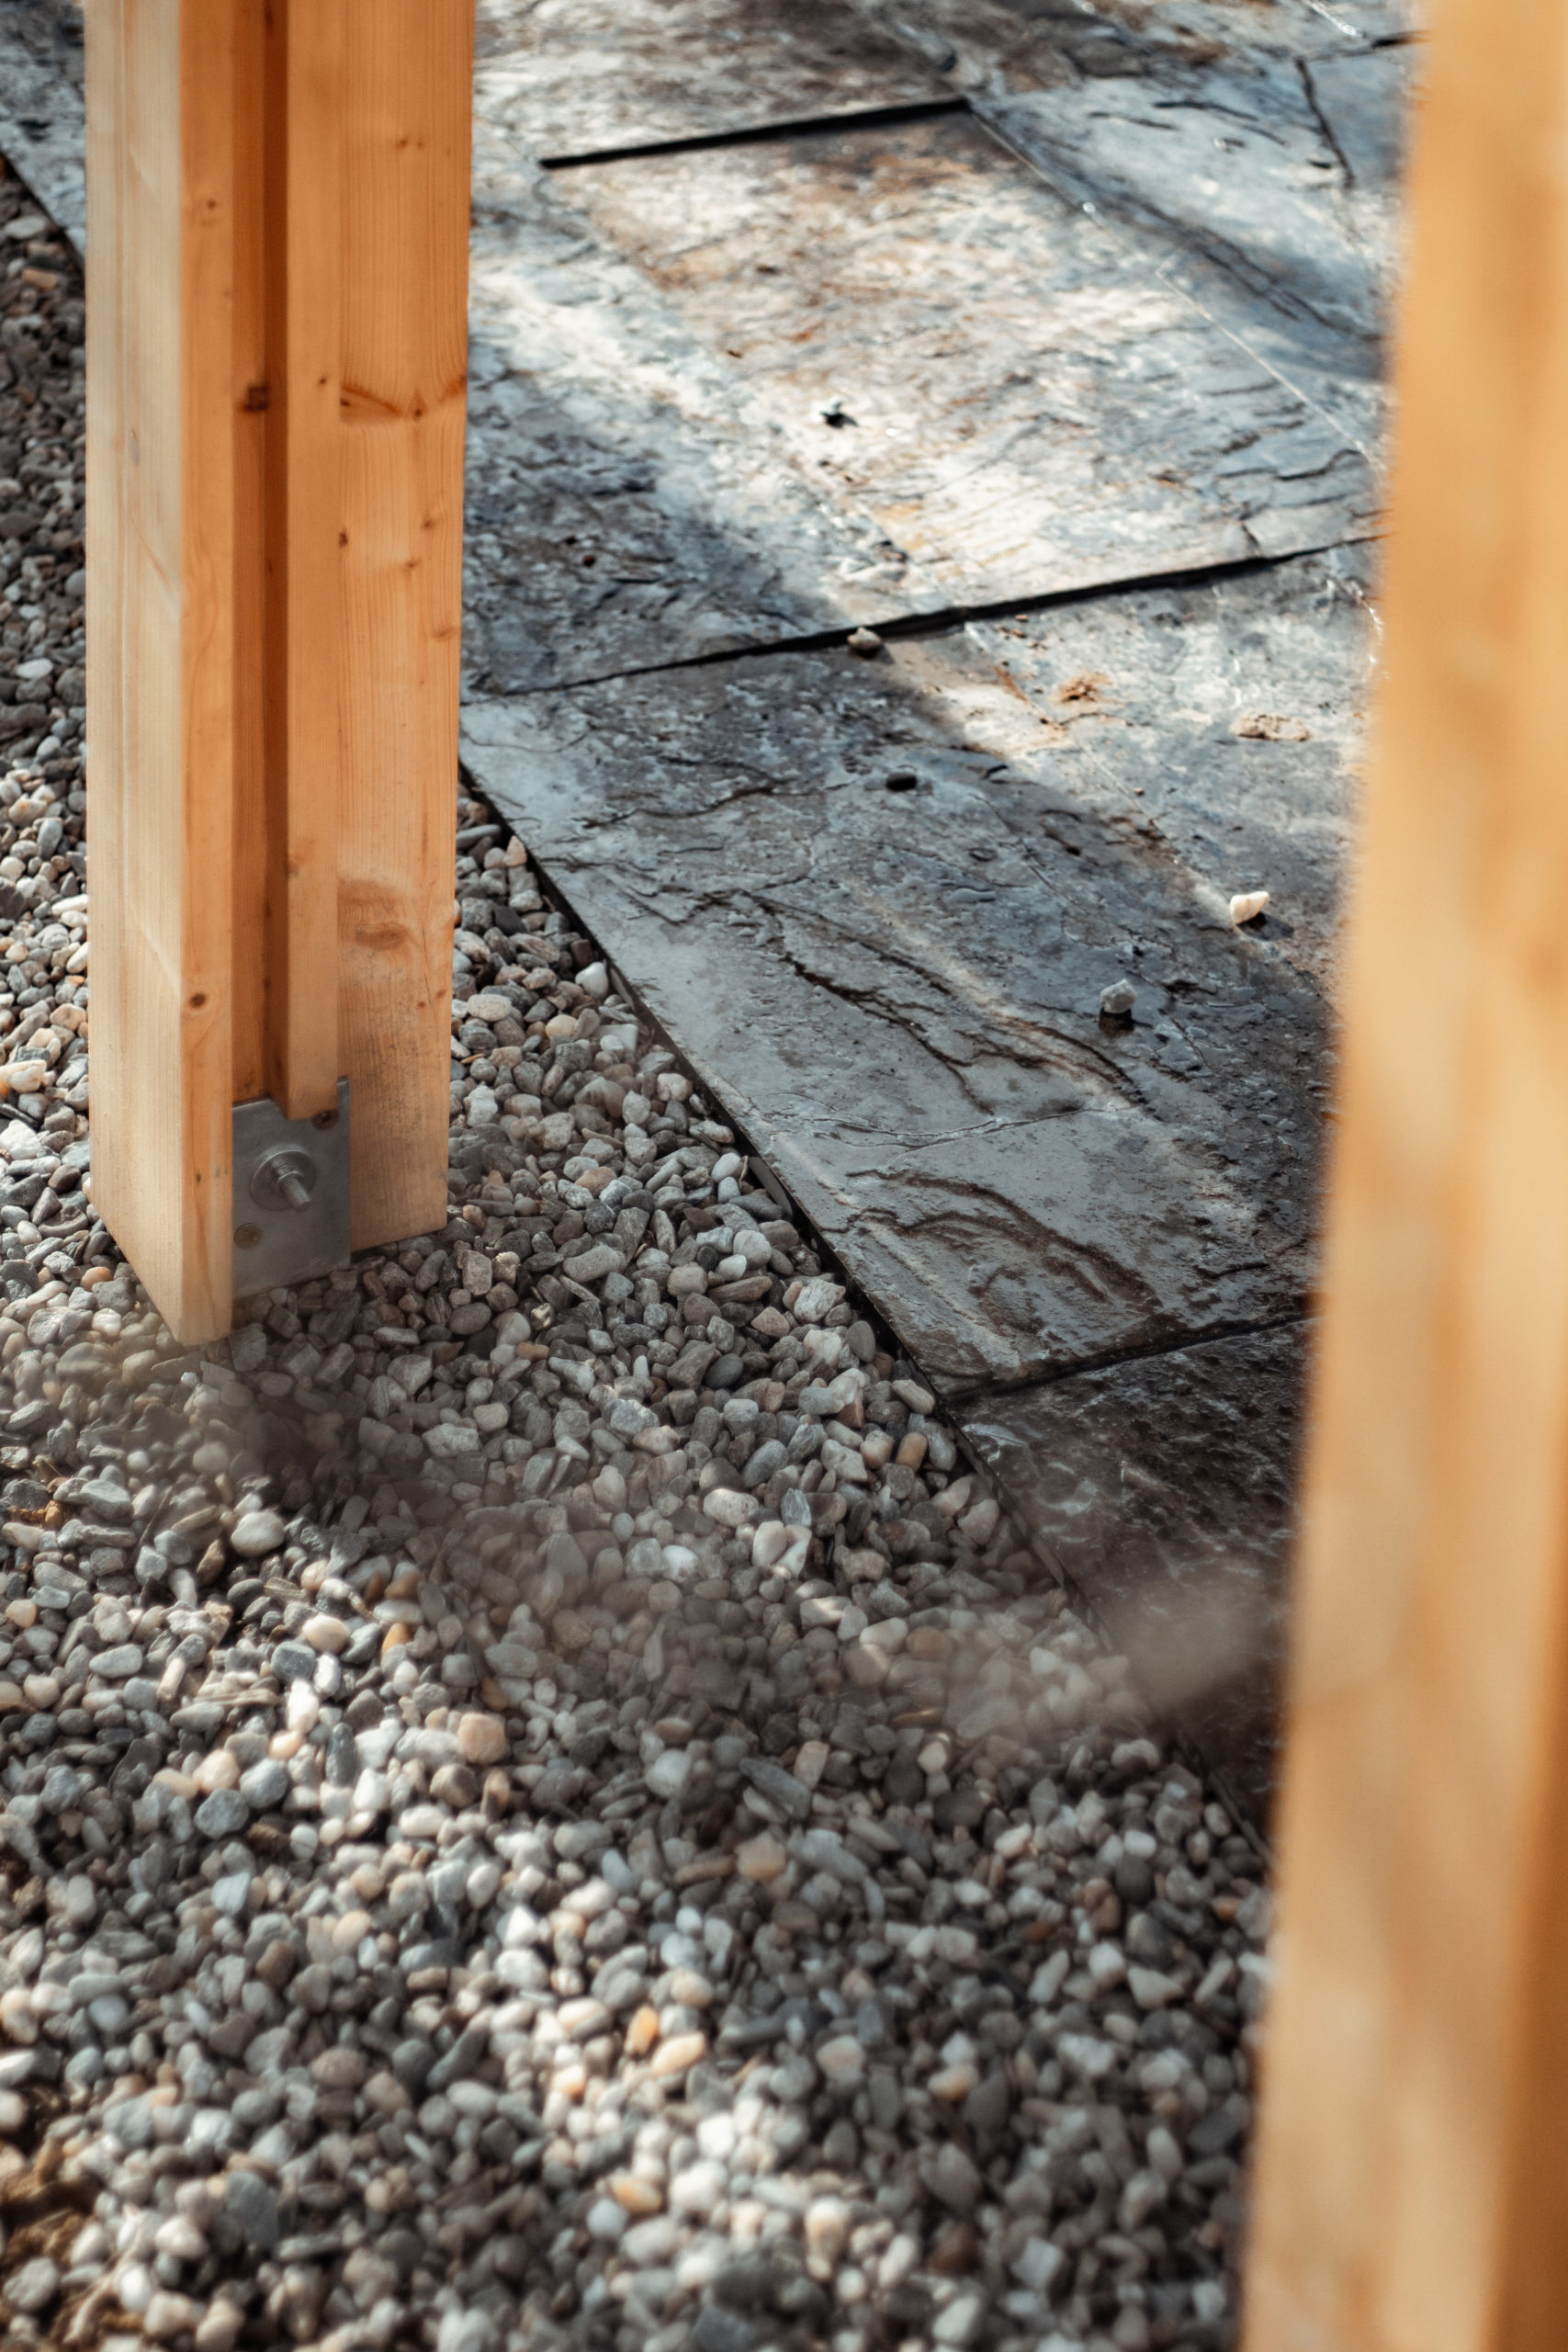 T section wood pillars held by metal post bases right over gravel area. Next to the grey gravel the pavement is made of rough and varnished slate stone tiles.